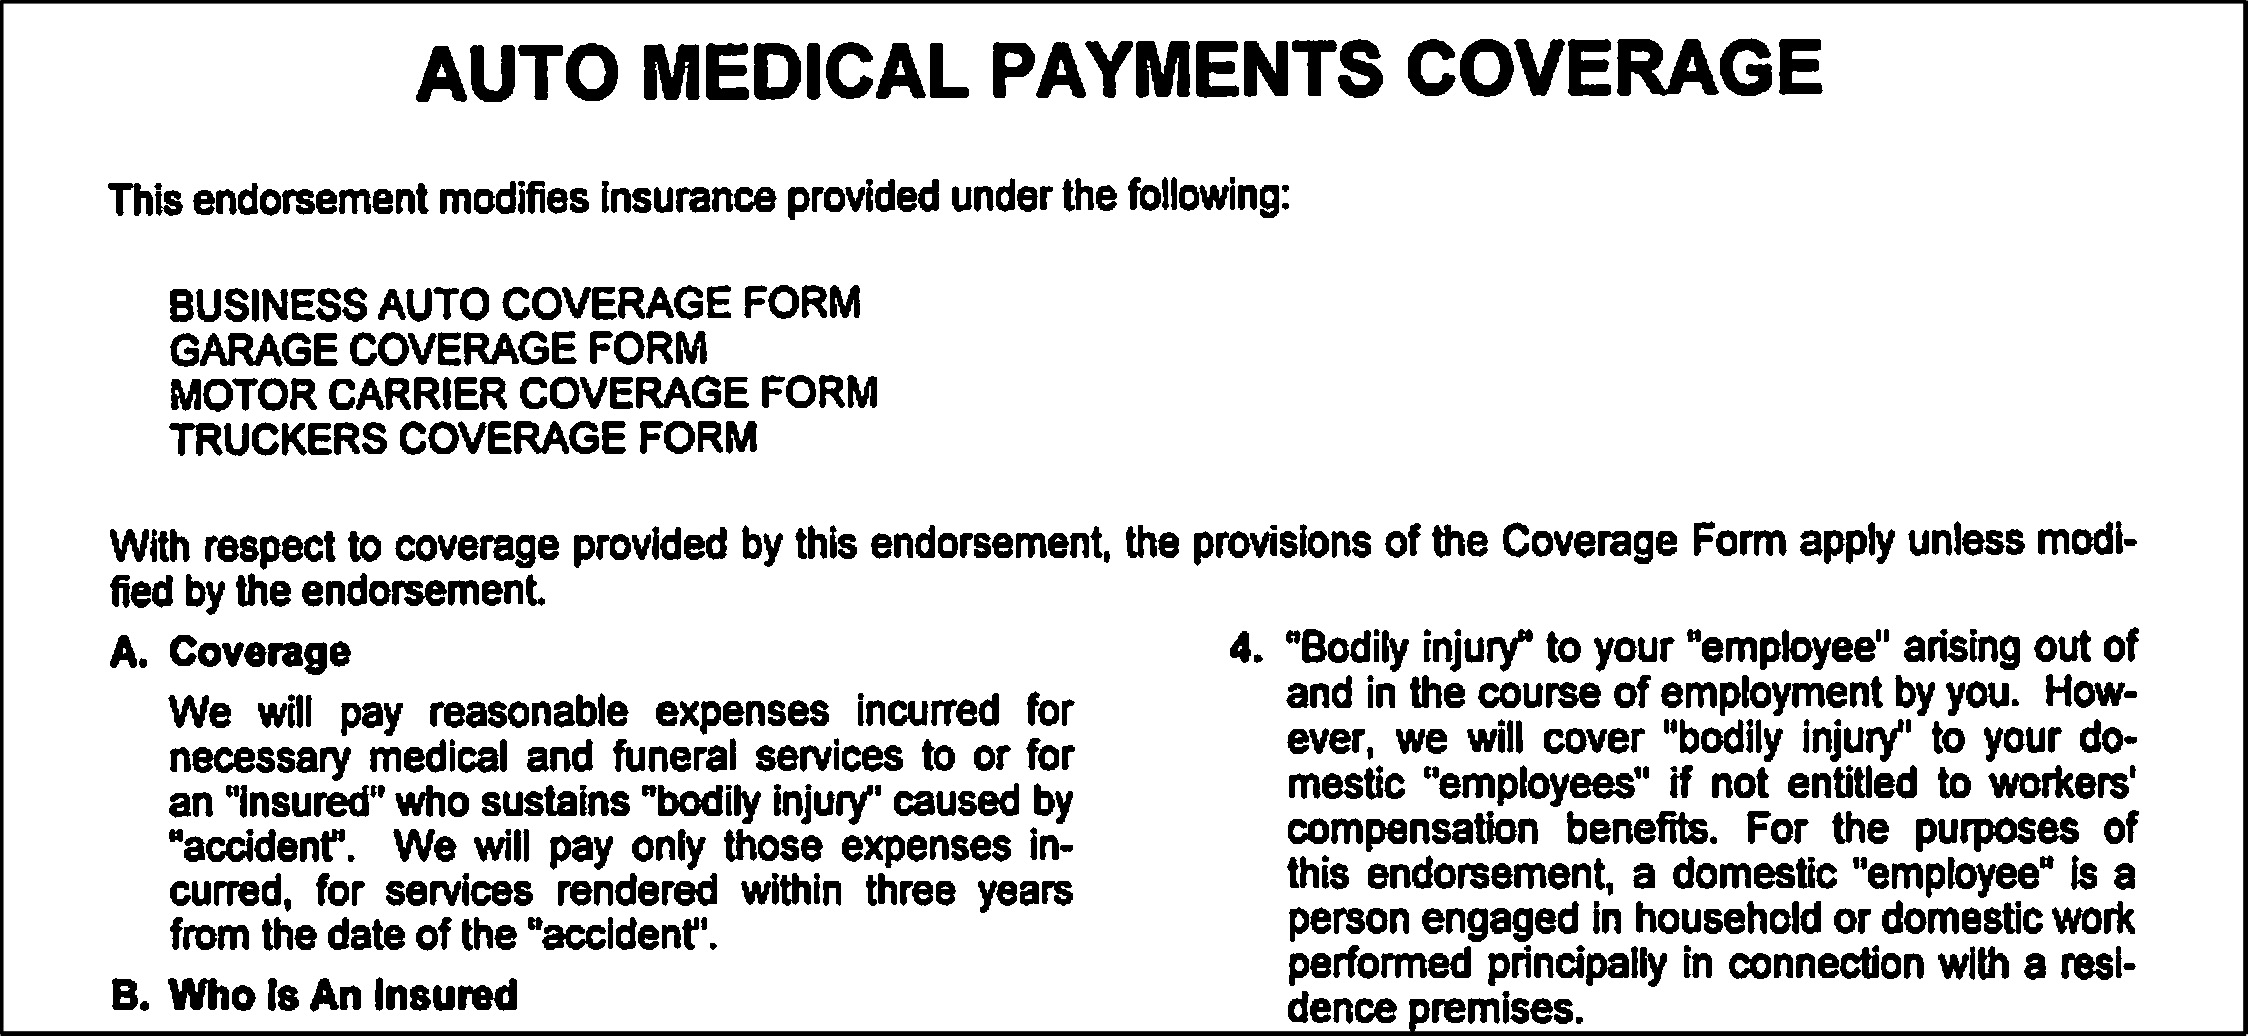 When Does an Insurer Become Obligated to Make Medical Payments ...